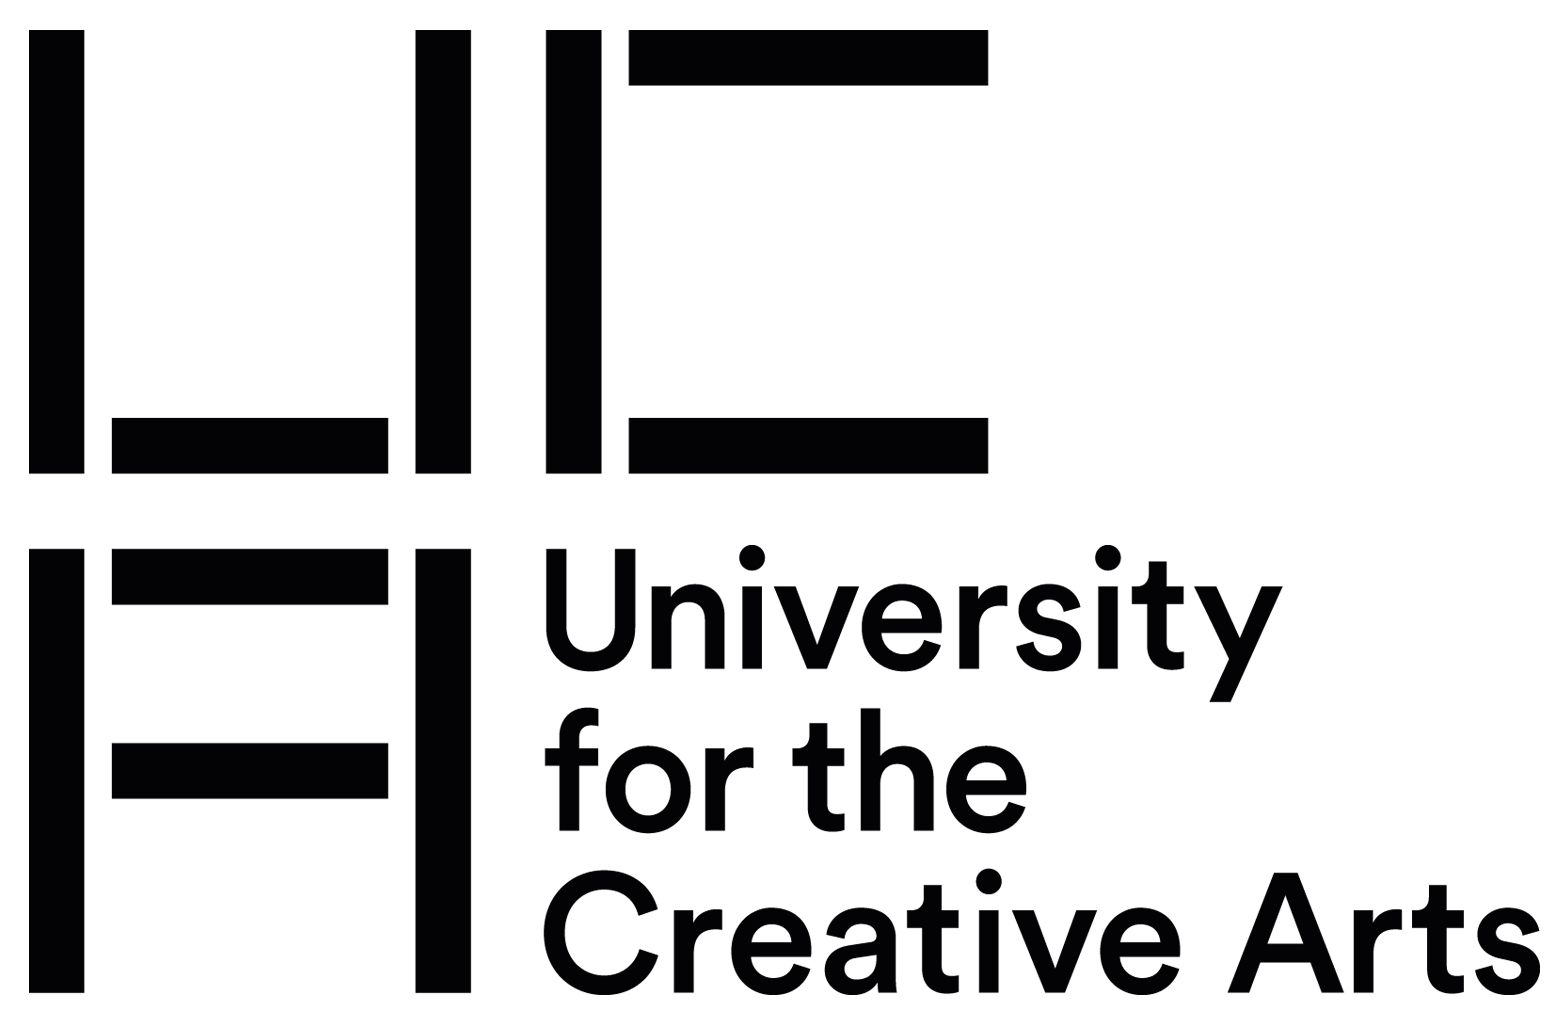 创意艺术大学(University for the Creative Arts)